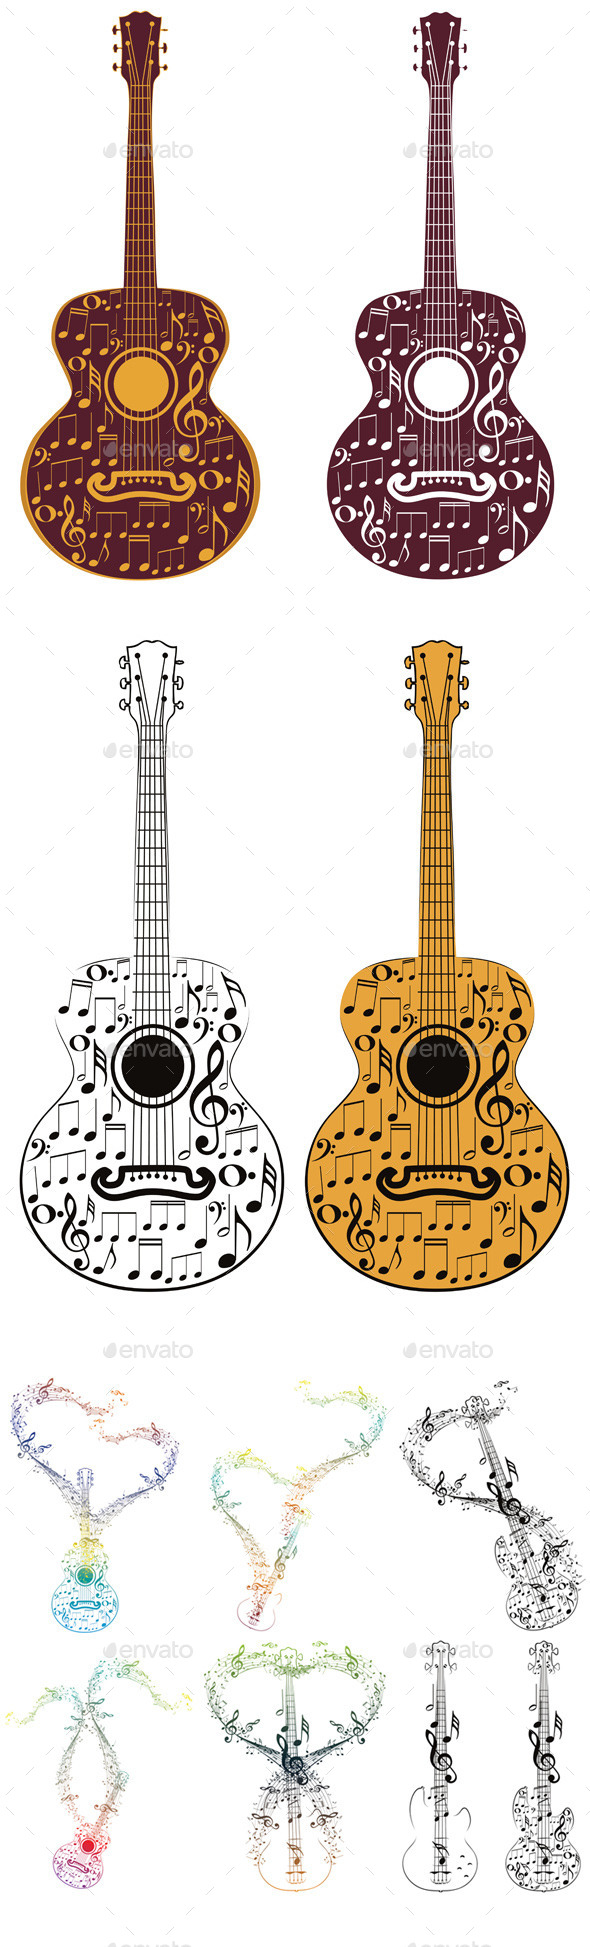 Guitar and Music Notes - Objects Vectors